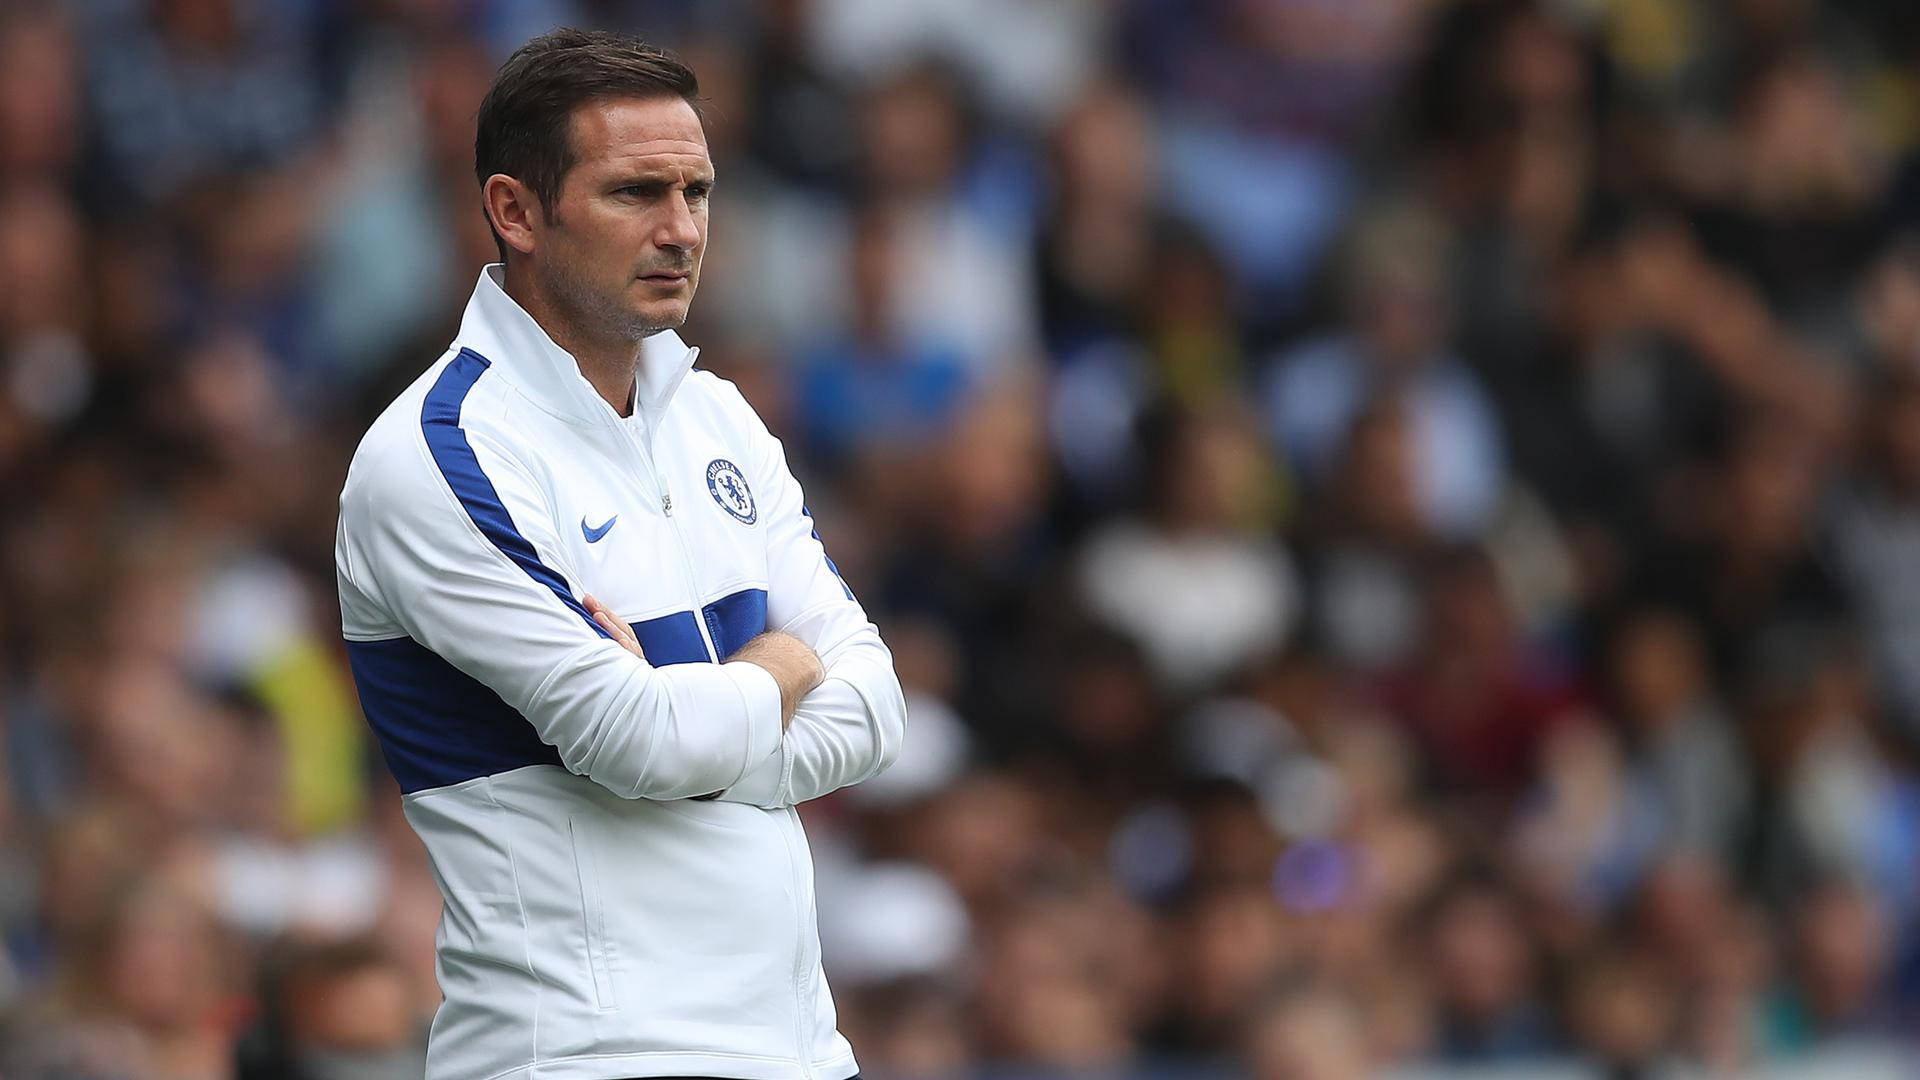 Chelsea rabbia Lampard